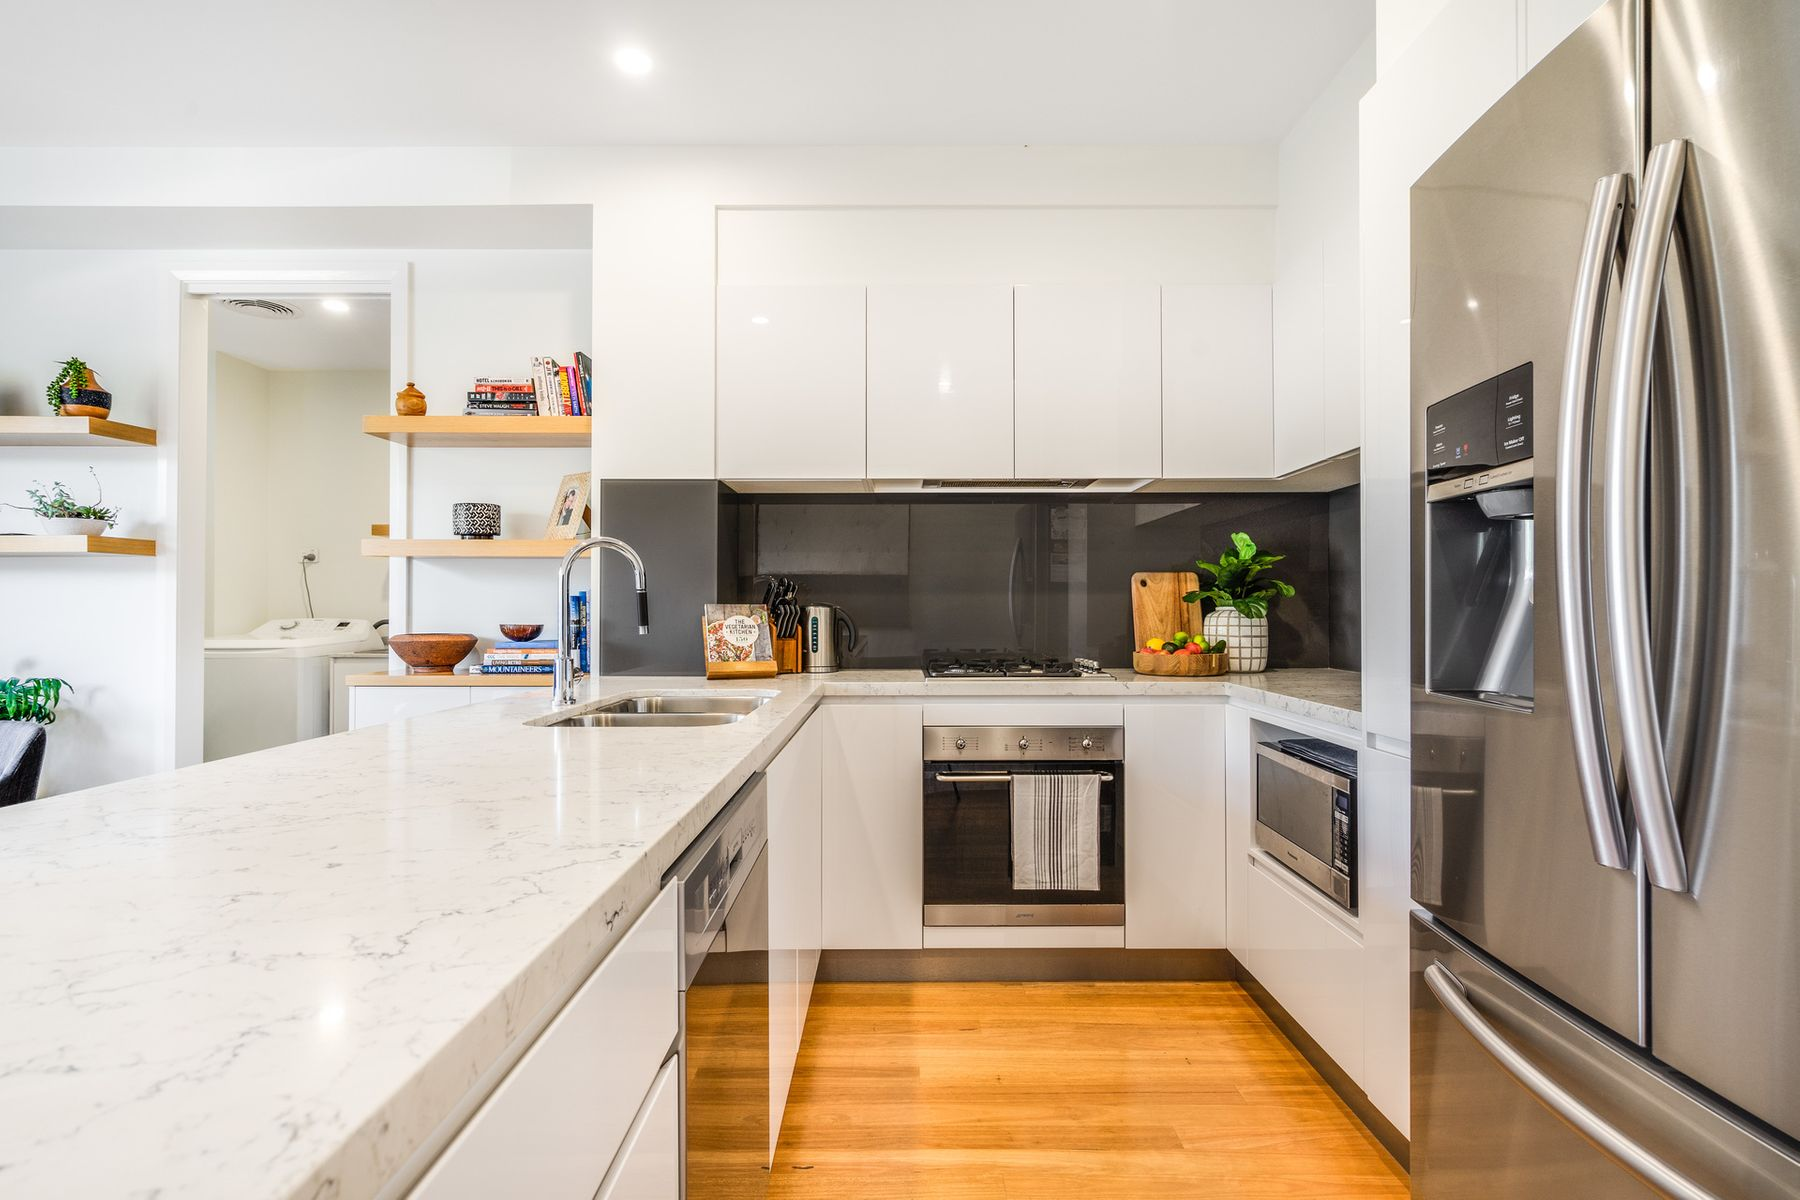 2/2A Frederick Street, Merewether, NSW 2291